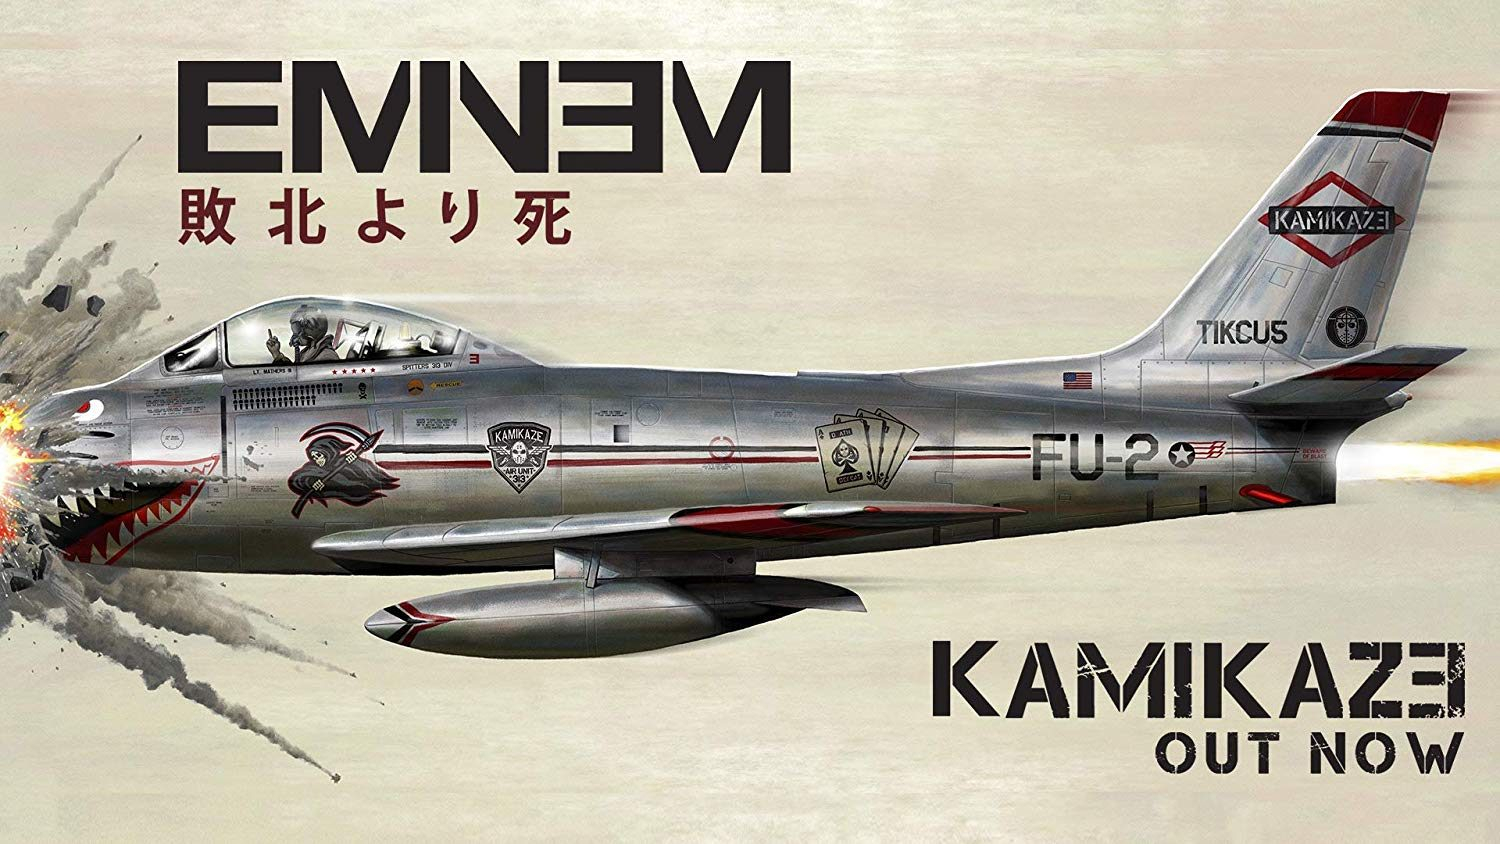 Kamikaze Eminem Songs Reviews and Ratings